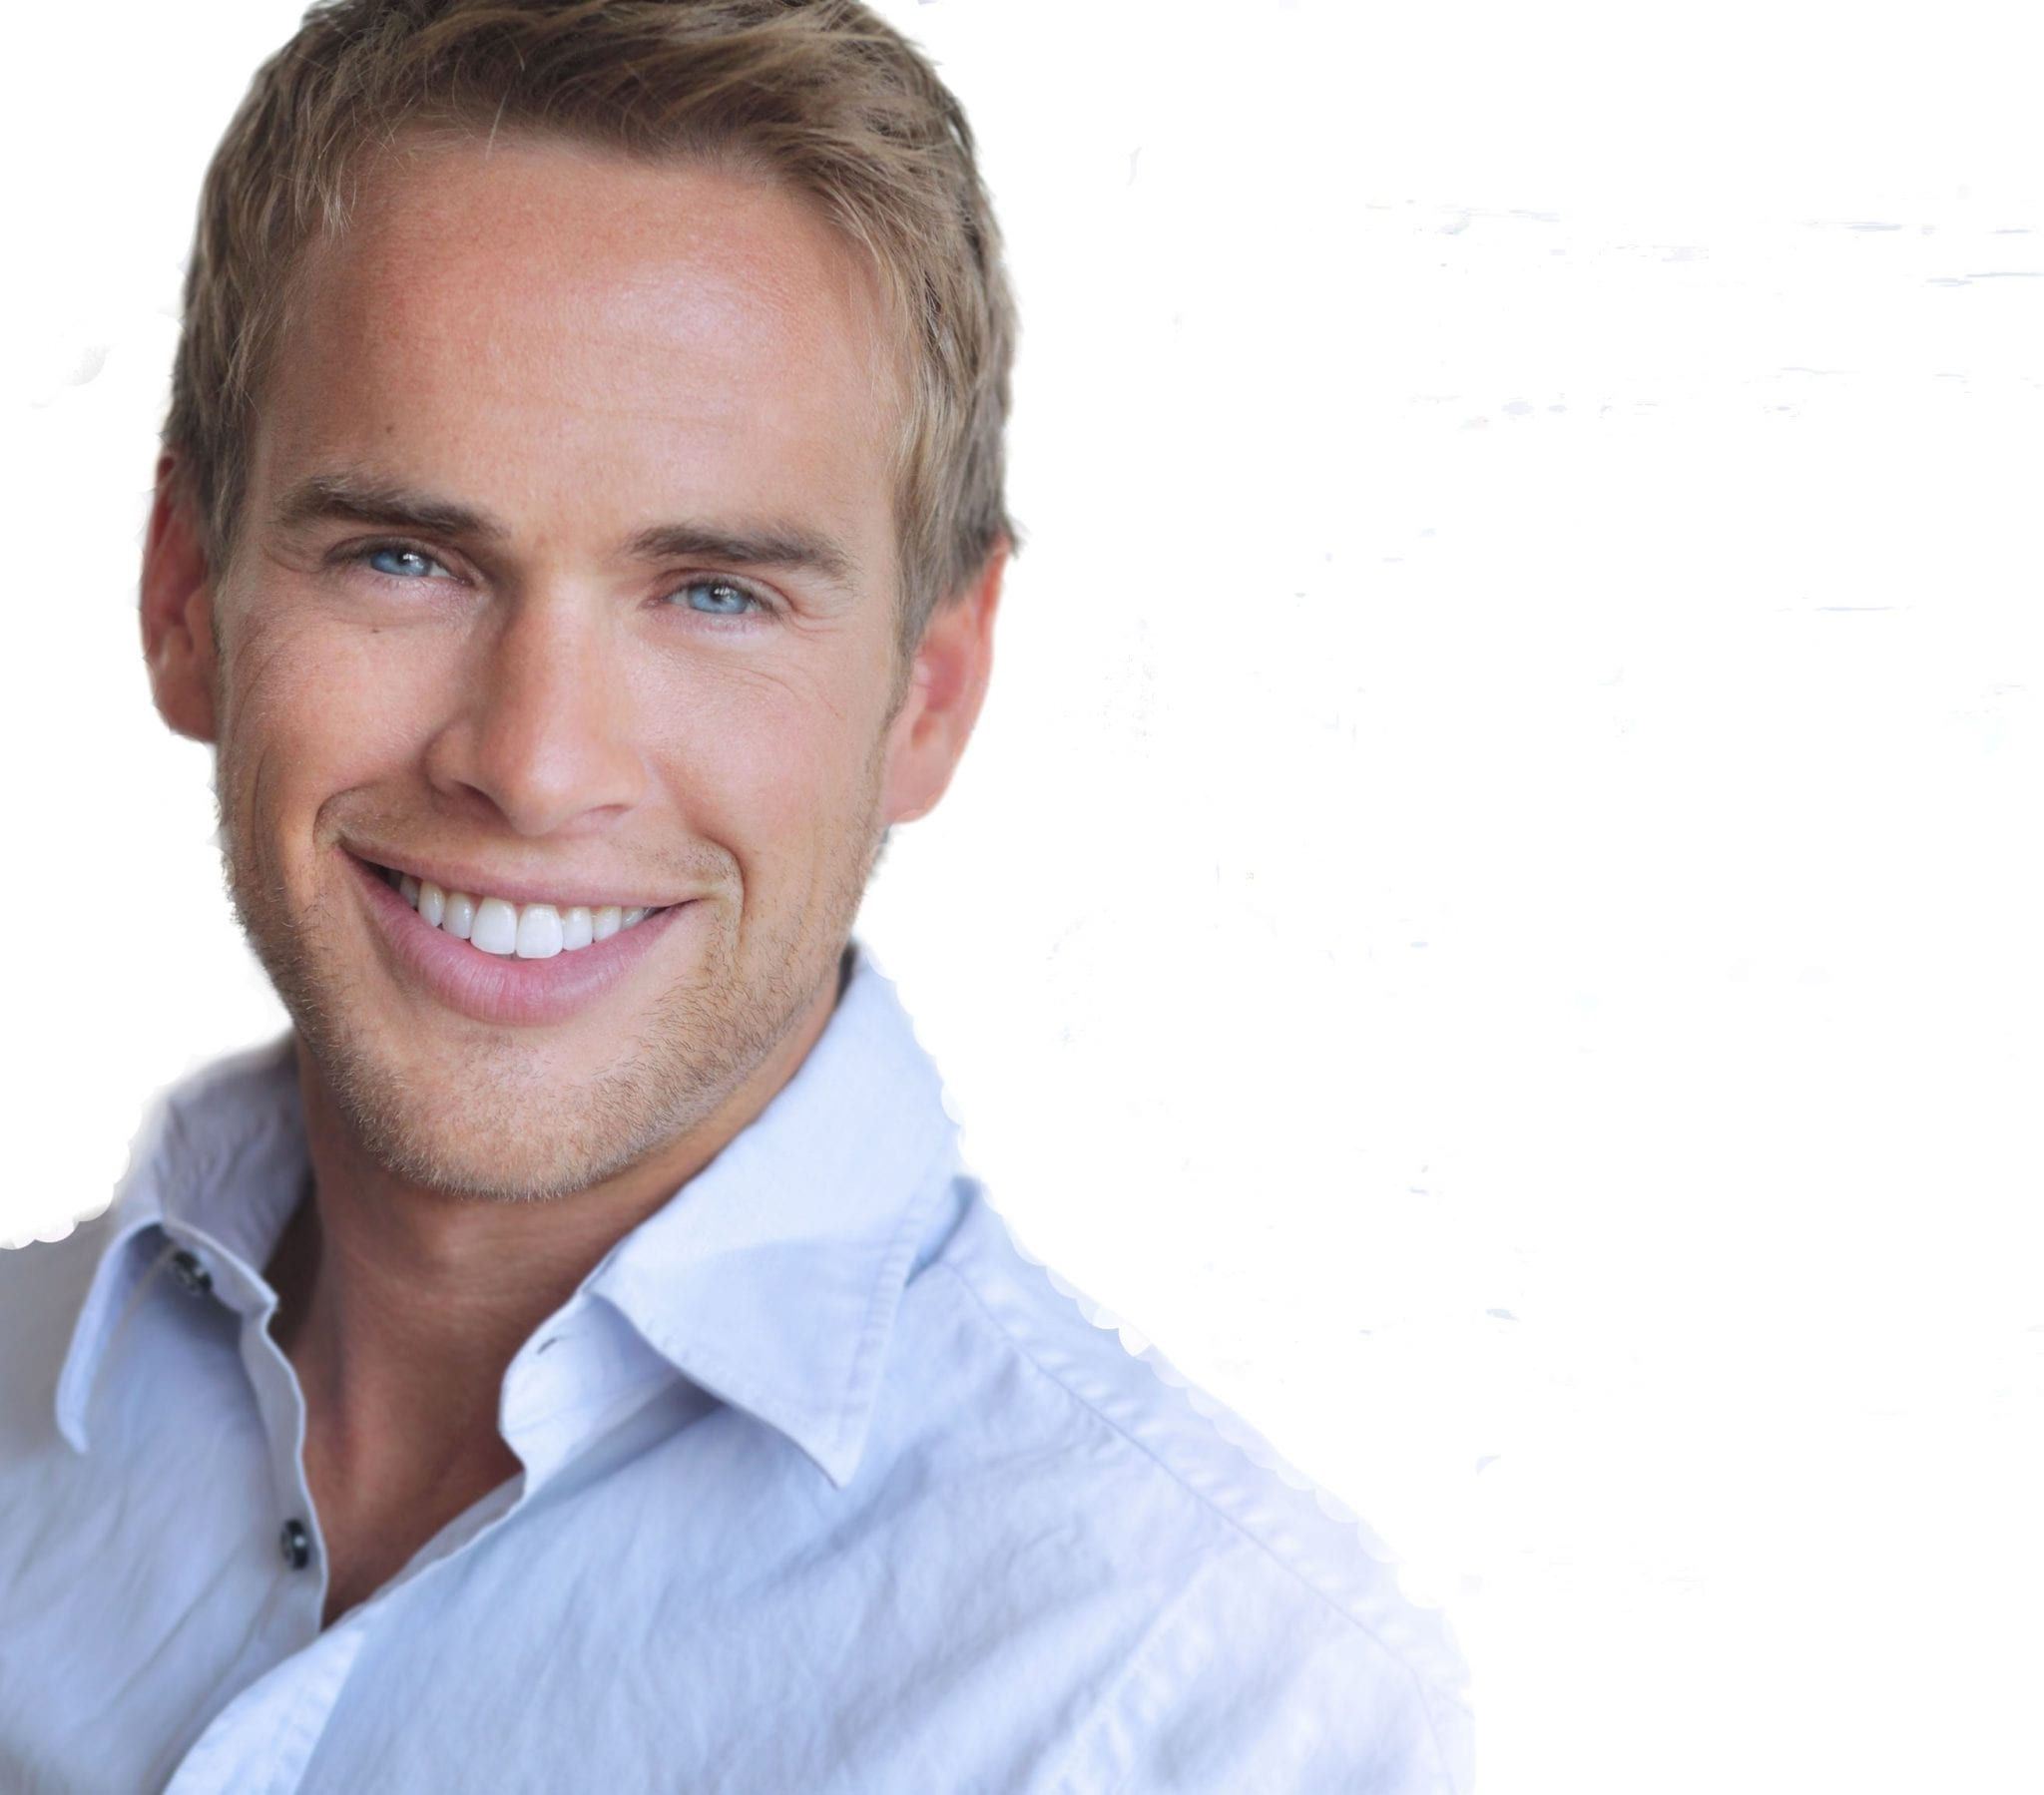 Image of smiling young man for Botox, dermal fillers and skin treatments for men page.